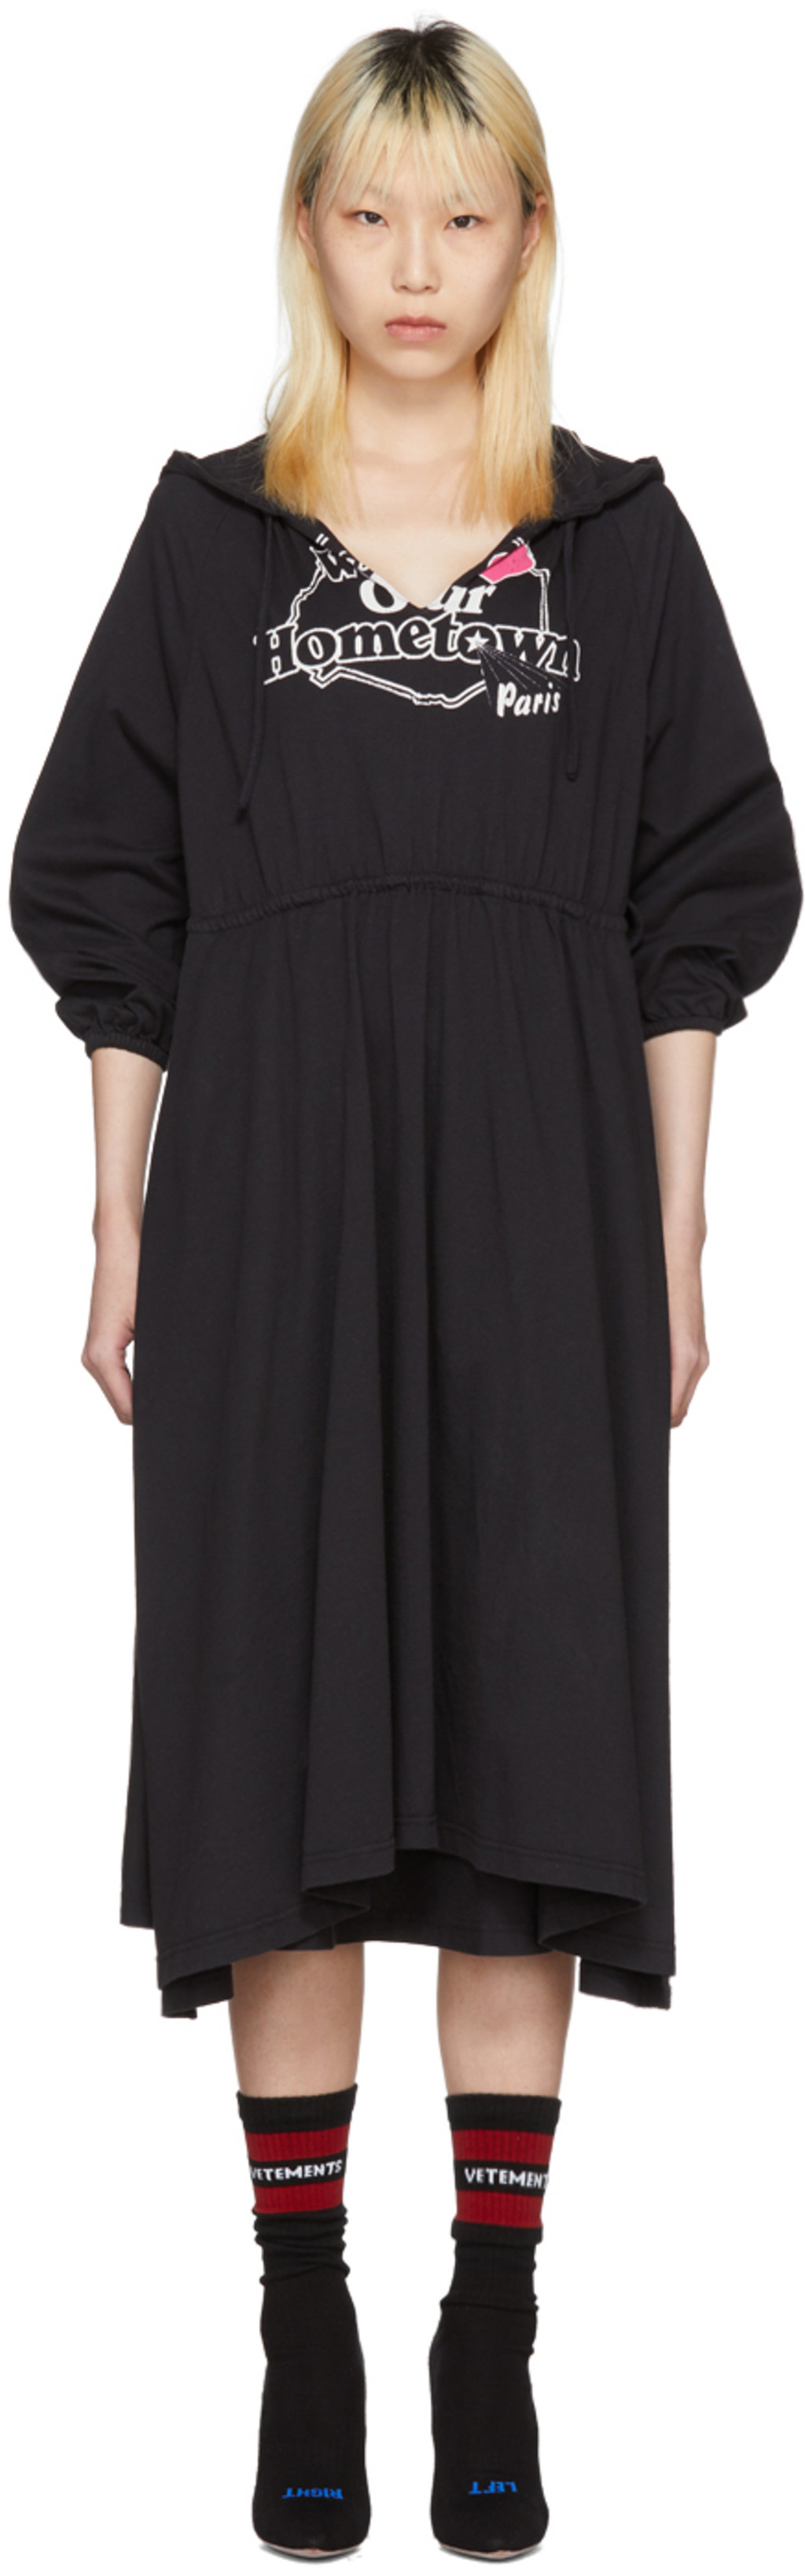 Black Hometown Hooded Jersey Dress VETEMENTS Ult56